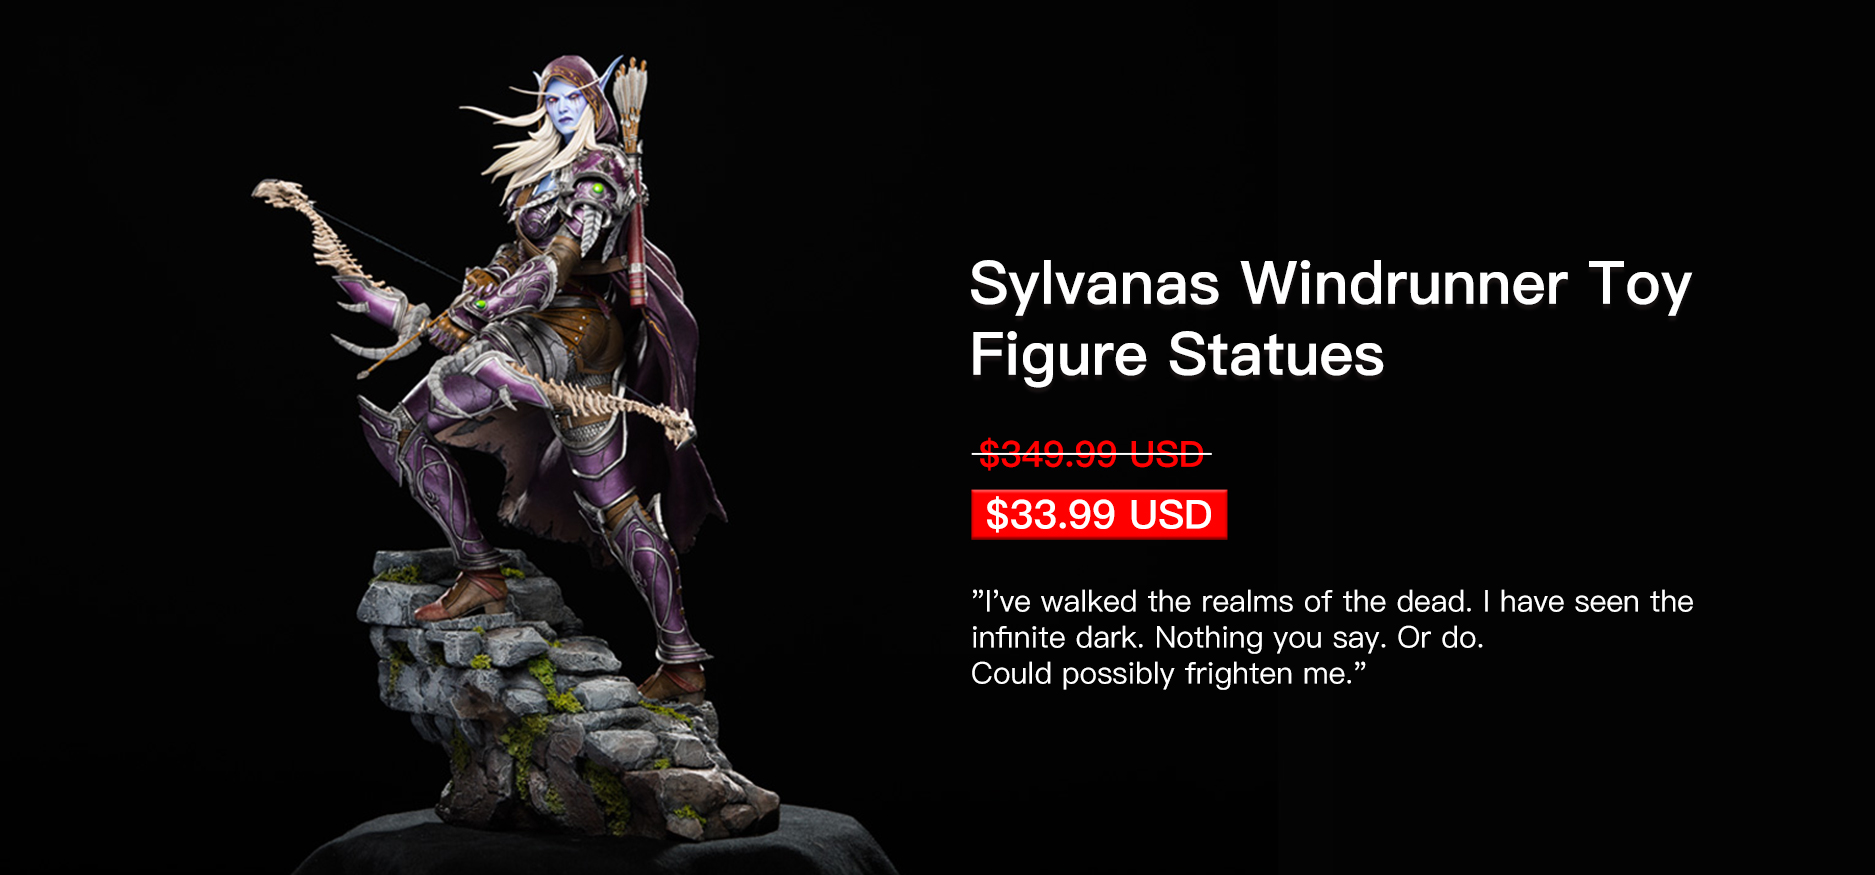 Sylvanas Windrunner Toy Figure Statues